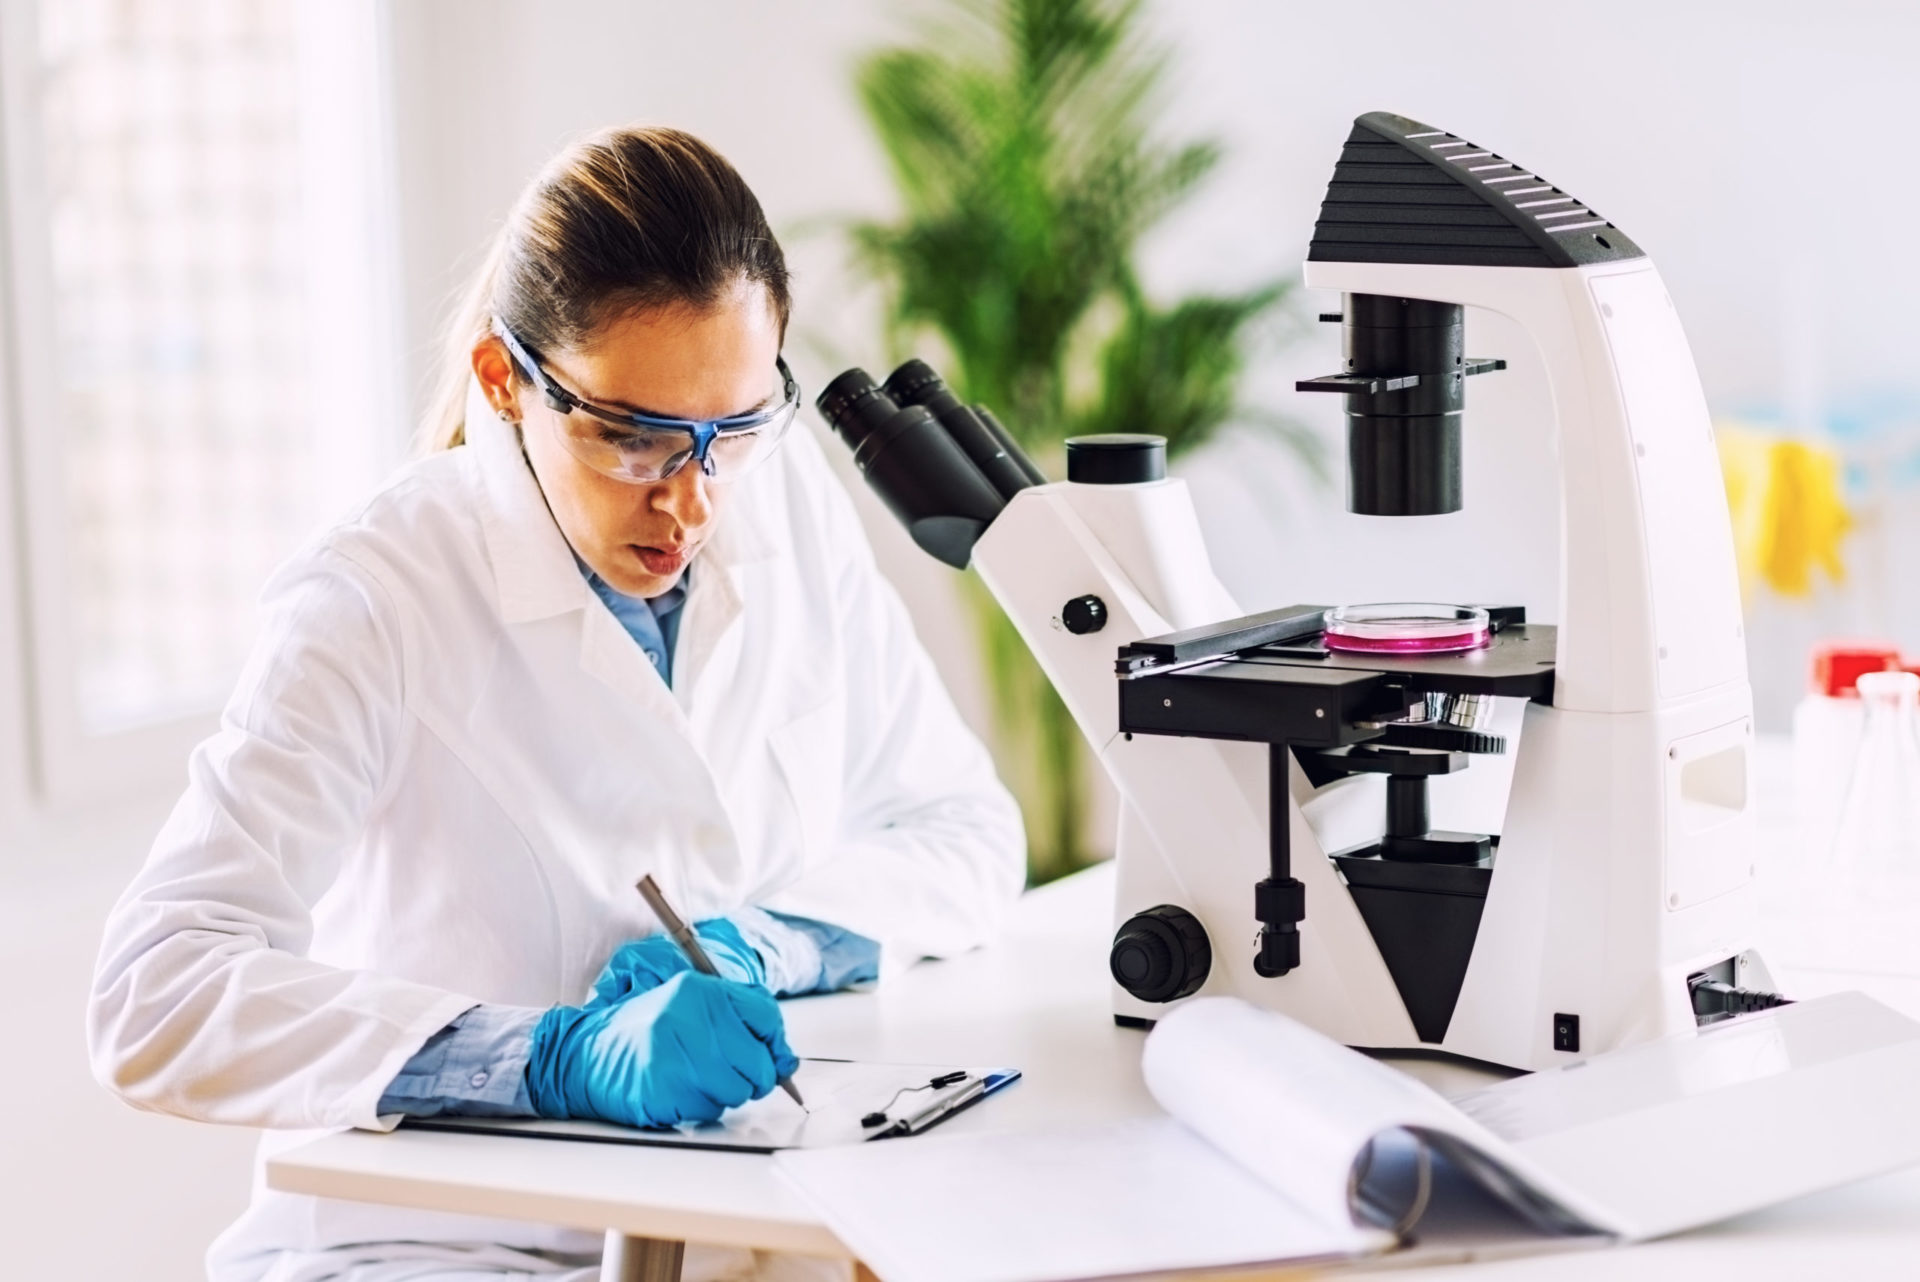 a microbiologist with safety glasses, a white coat and blue gloves who has examined bacteria with the help of a large microscope and takes notes